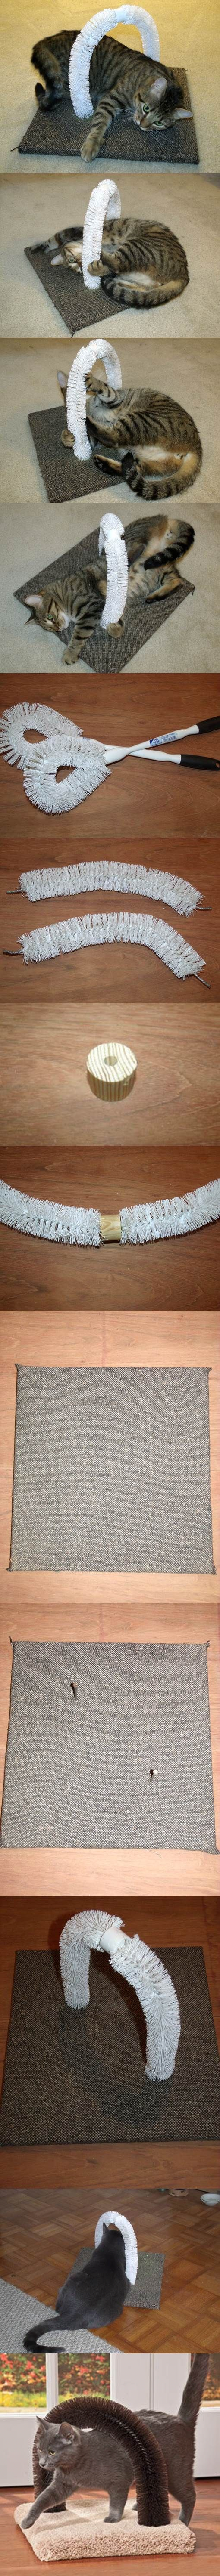 DIY Self-Petting Station for Cats. I need to make one of these for Mittens!